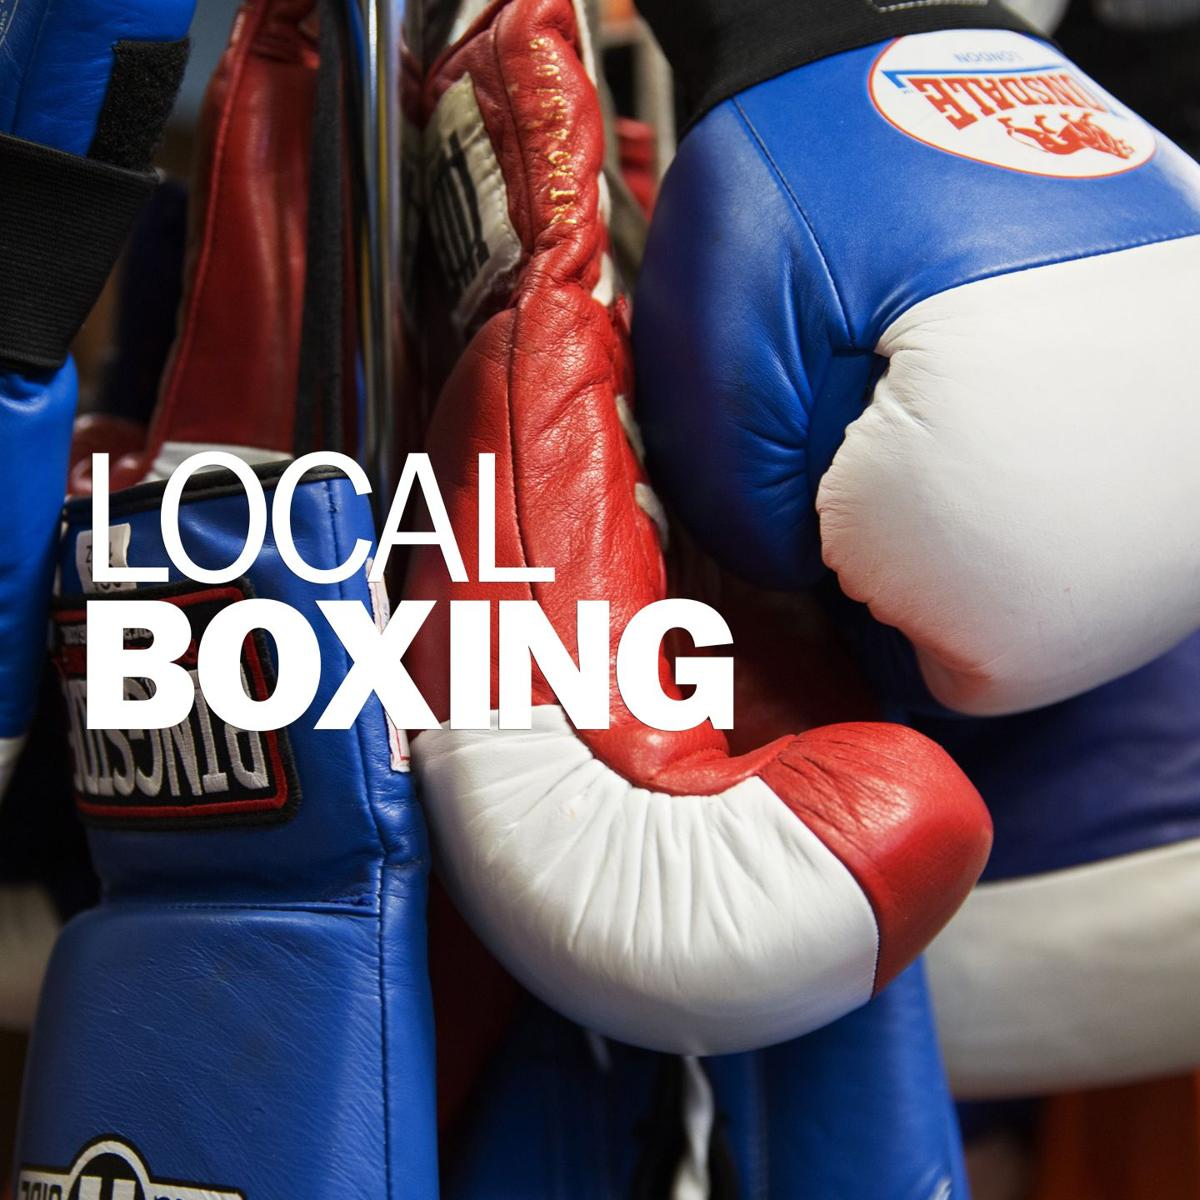 Golden Gloves Fitness Vaughan: Brian 'BoMac' McIntyre Building Boxing Pipeline In Omaha